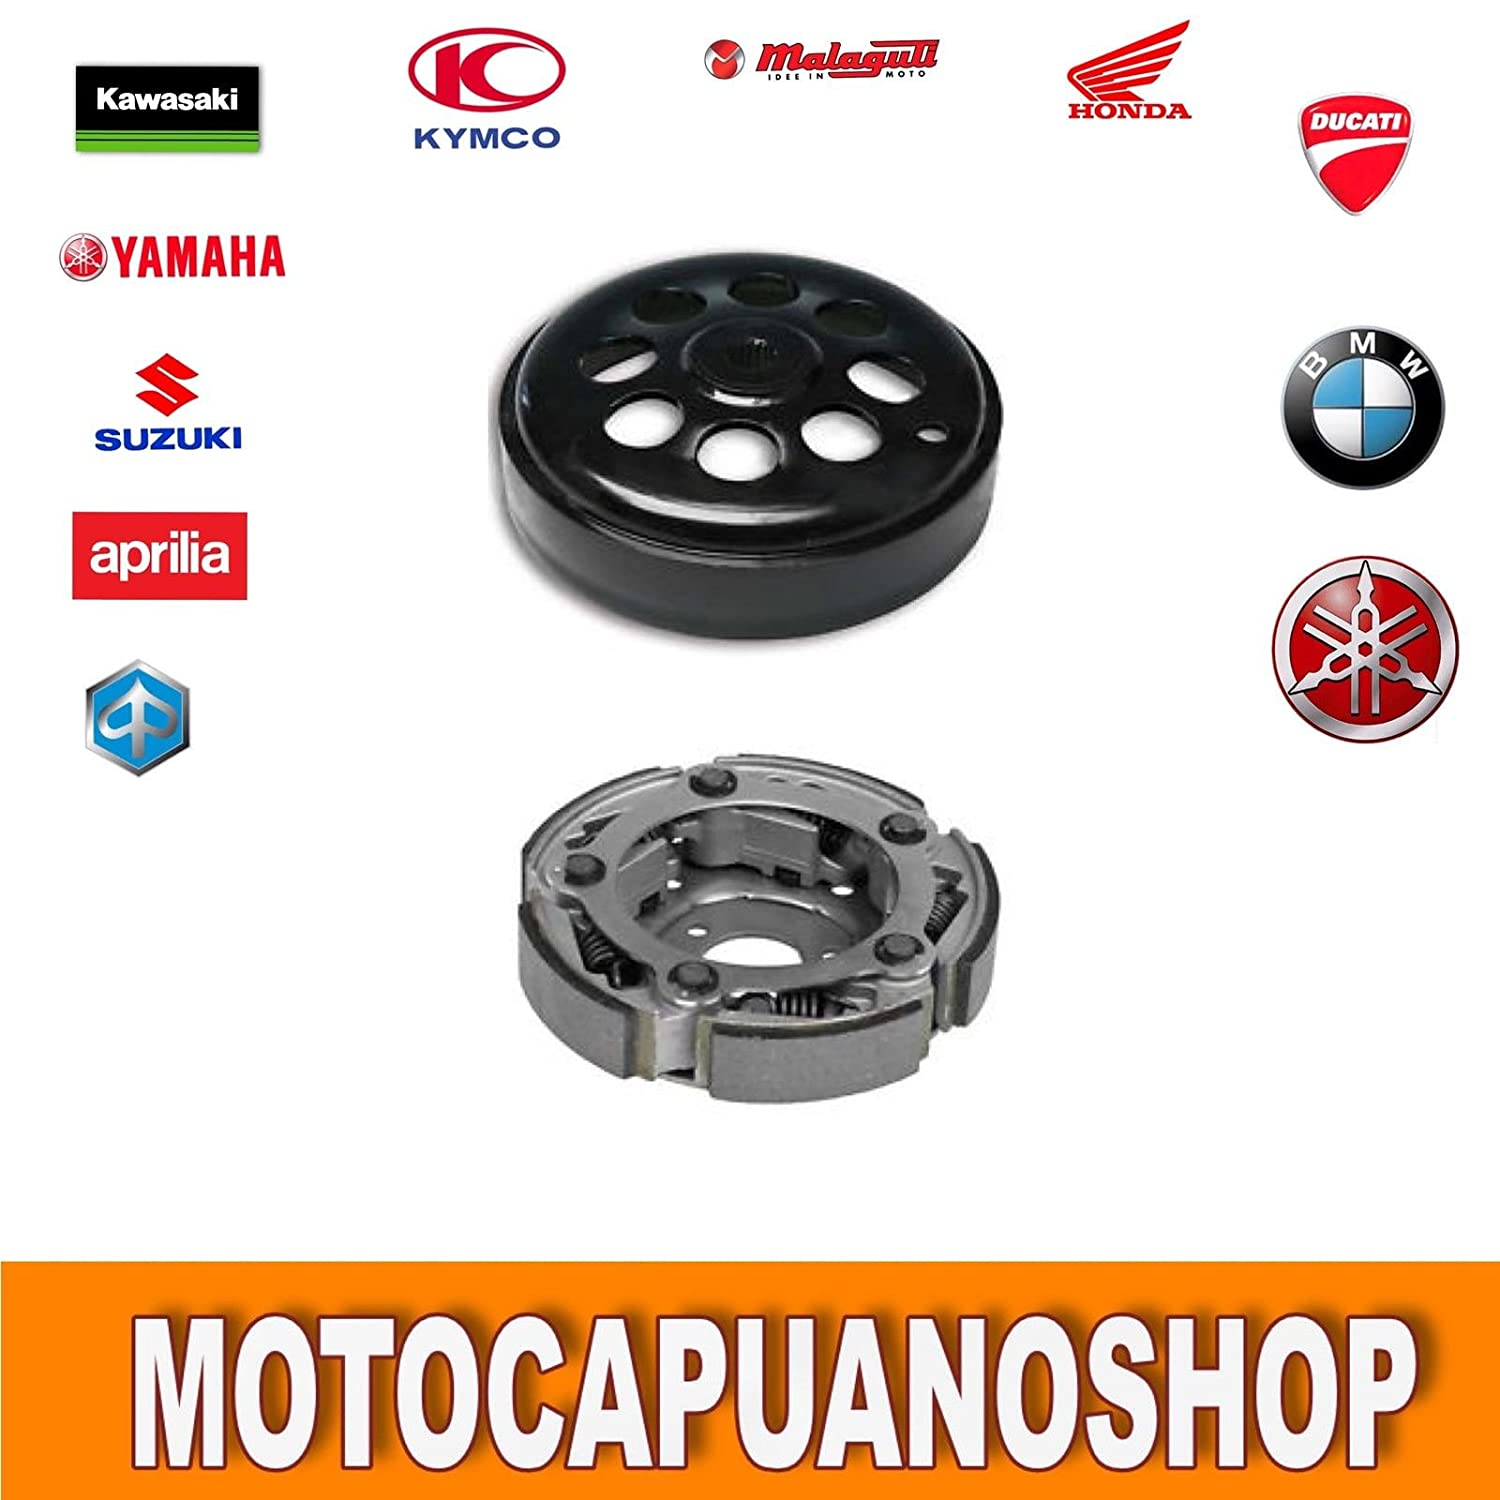 Kit Campana impulsor embrague Yamaha YP 400 Majesty ABS 2010 2011 Malossi: Amazon.es: Coche y moto